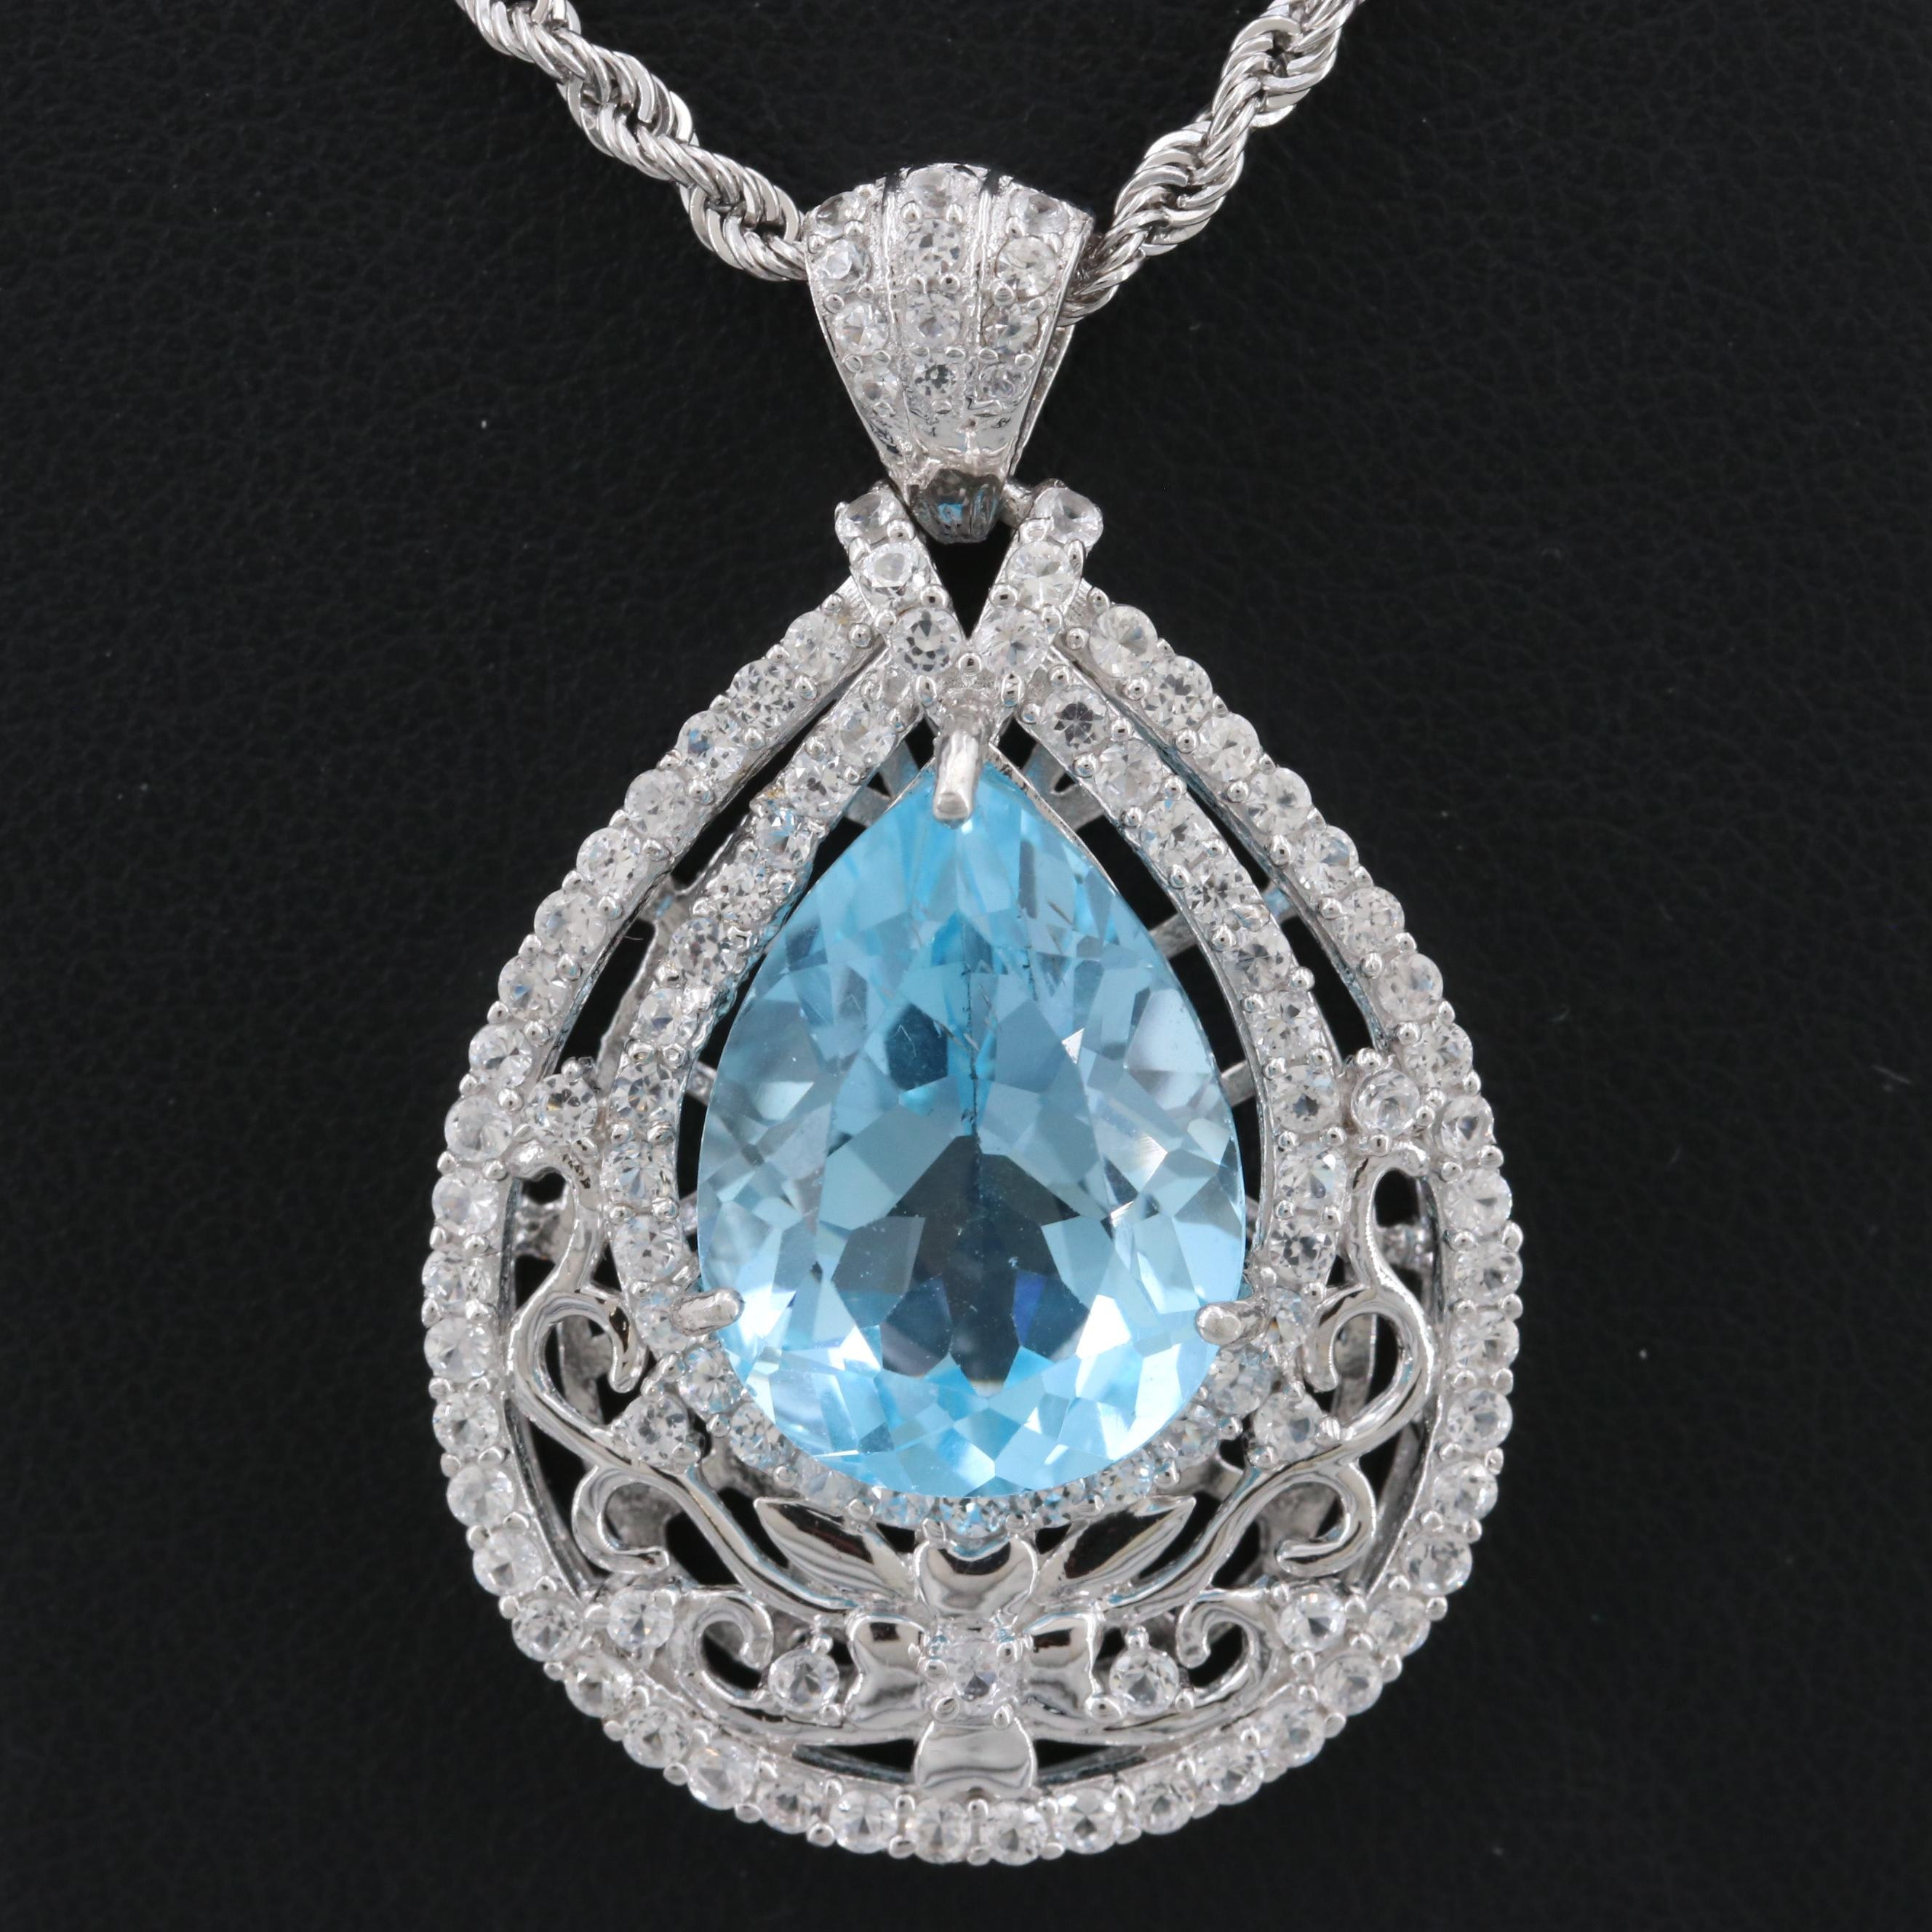 Sterling Silver Blue Topaz Pendant Necklace with White Topaz Accents